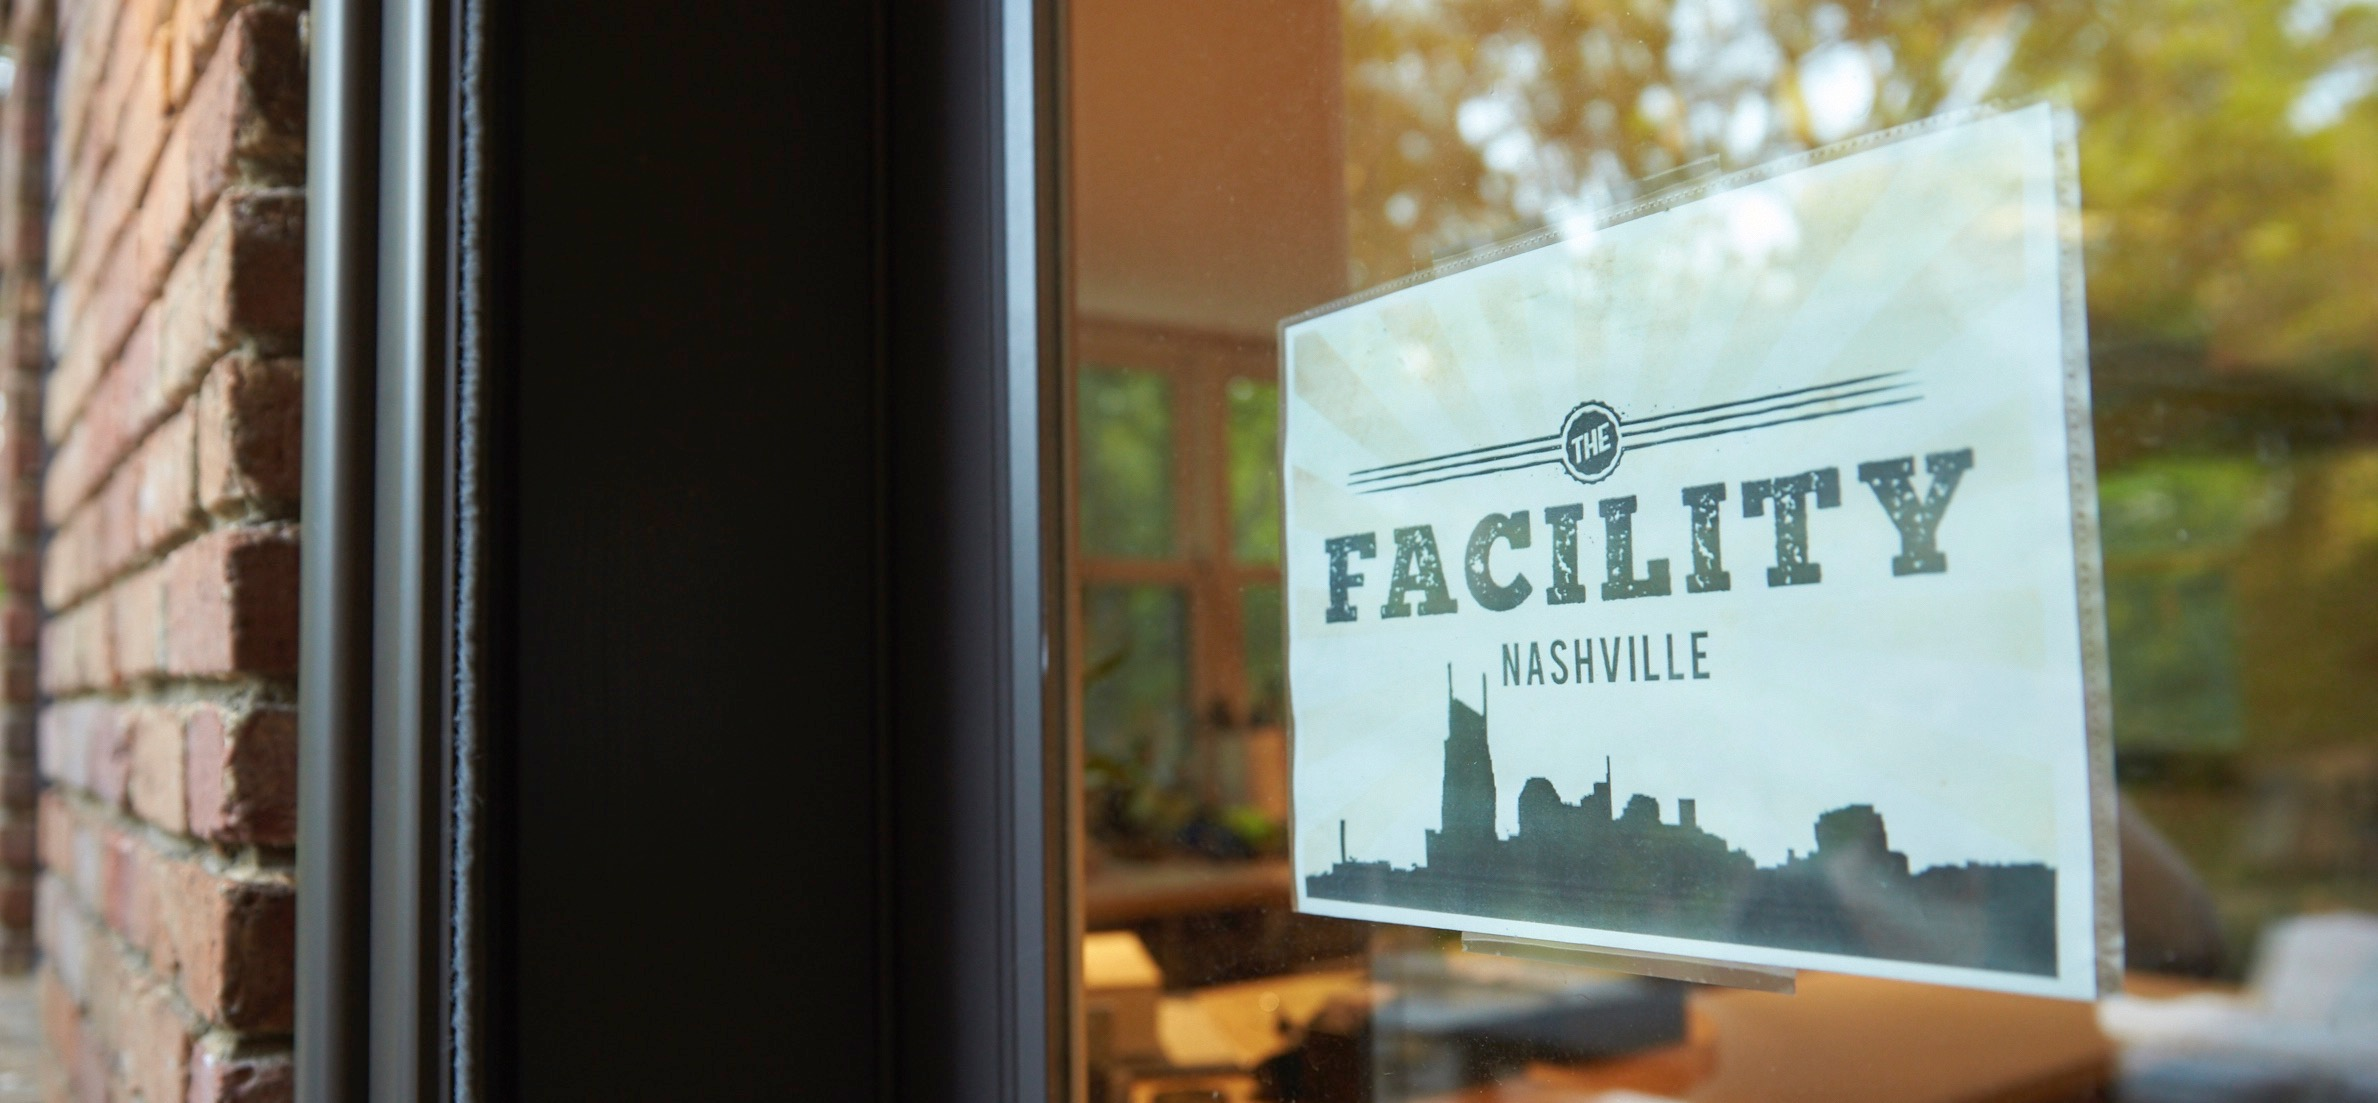 THE FACILITY NASHVILLE - JBO Music is proud to partner with The Facility Nashville for all your in-person recording needs! Located just 15 minutes from Historic Music Row, The Facility Nashville offers recording solutions to fit all needs and budgets.We cater to Songwriters, Artists, Bands, Publishers, Producers, Engineers and any other creative type looking to record.